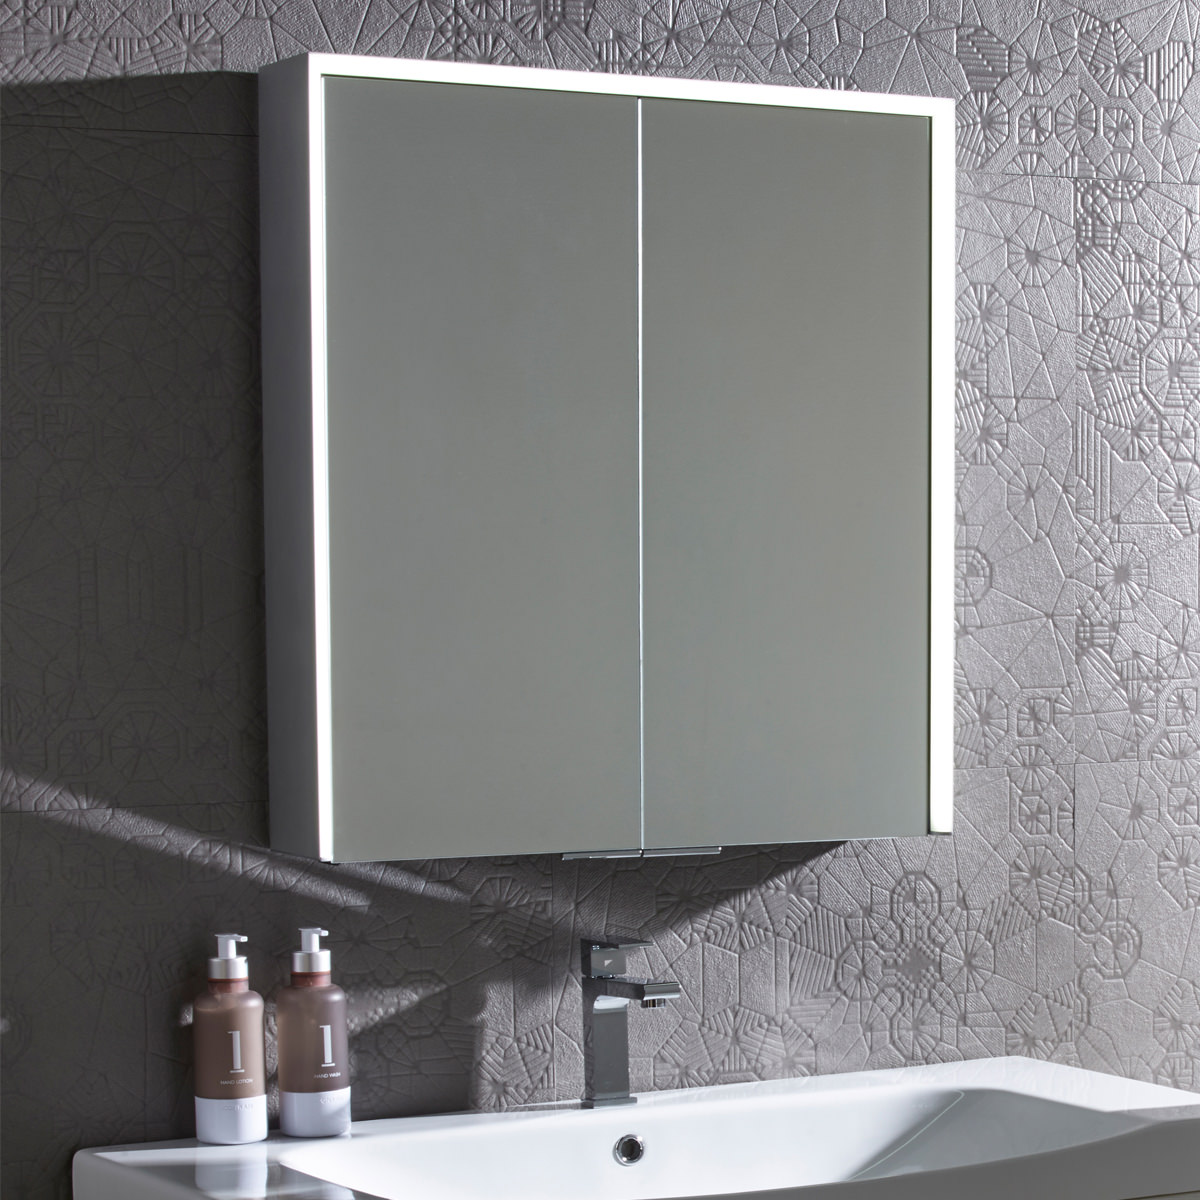 Bathroom Cupboard Mirror Roper Rhodes Compose Bluetooth Mirror Cabinet Cp65al